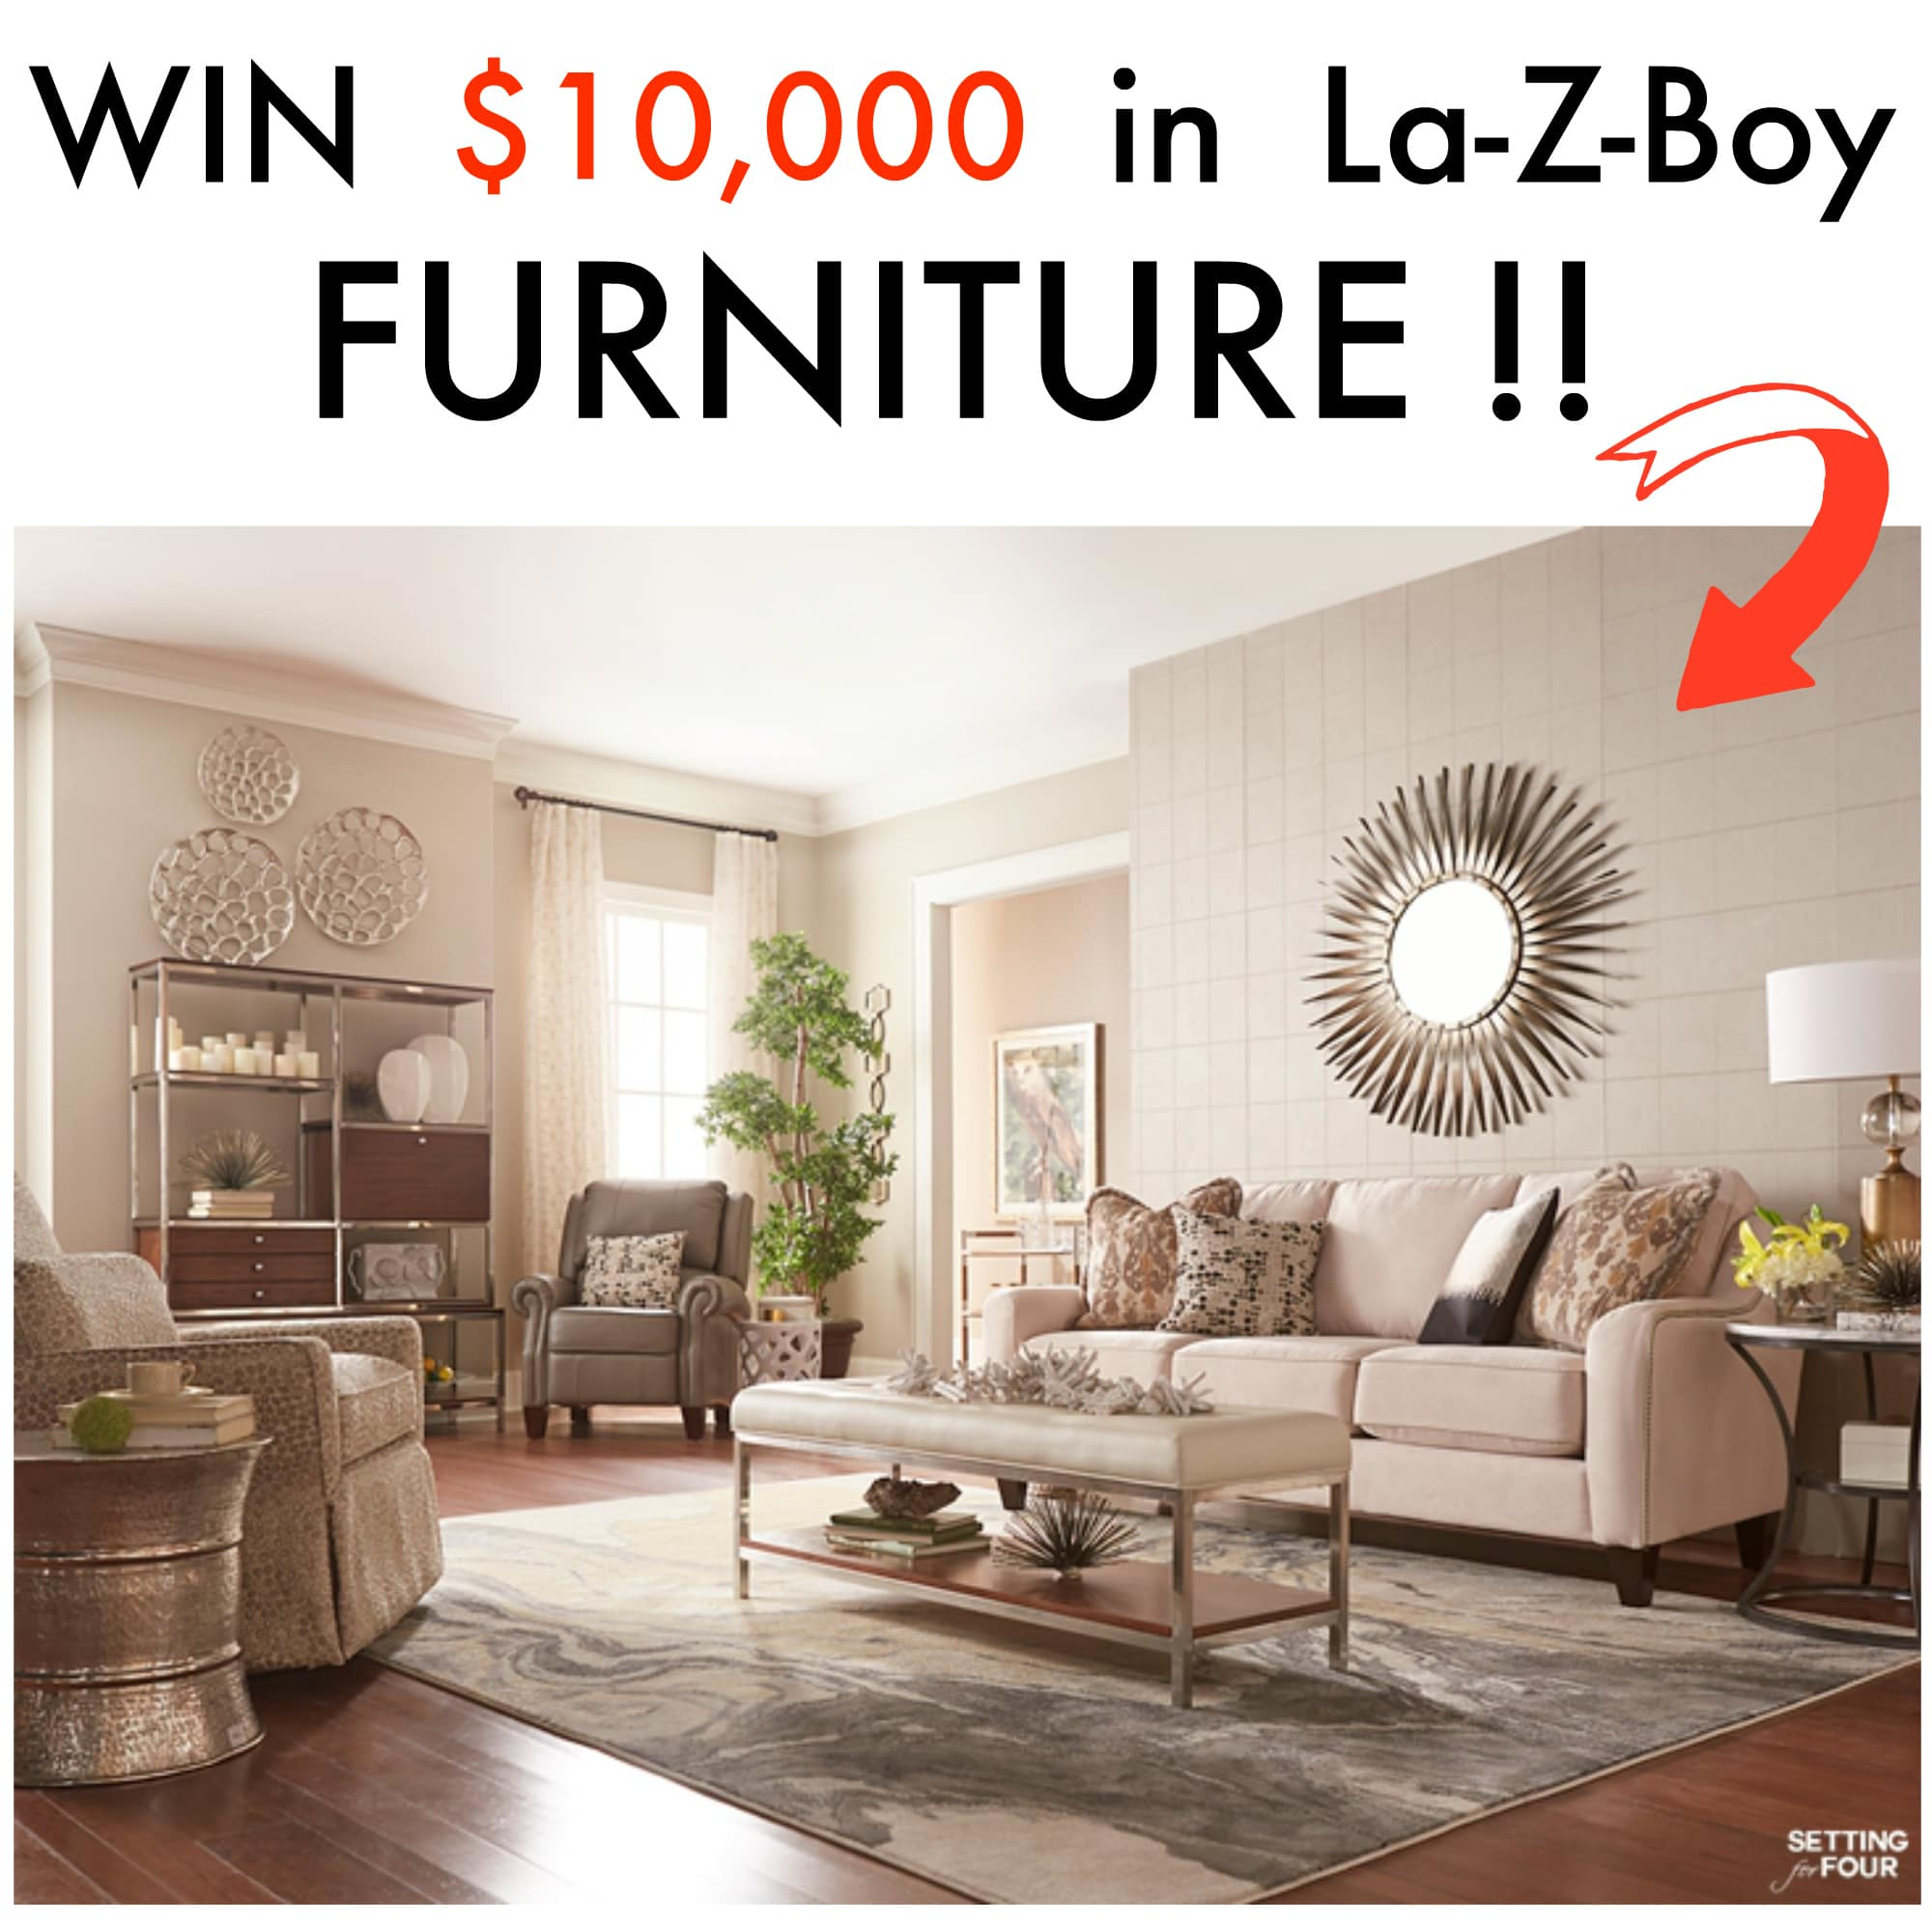 Enter to win $10,000 in La-Z-Boy-Furniture and see this living room that I designed- it's all La-Z-Boy furniture! ww.settingforfour.com